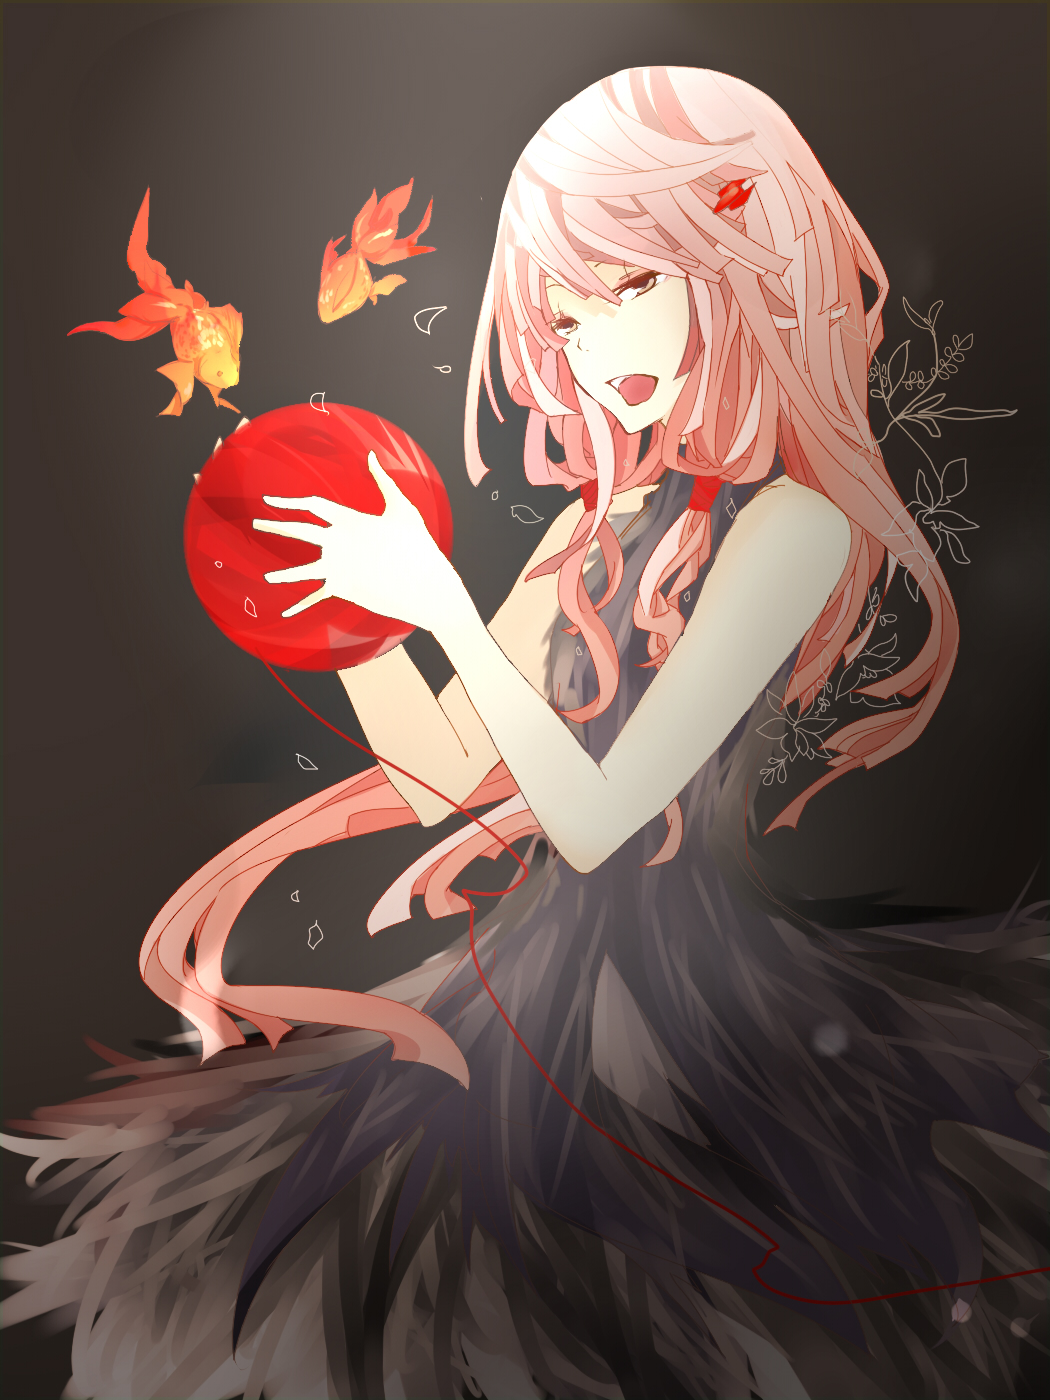 Image Result For Anime Cubed Anime And Manga Pictures Image Galleries